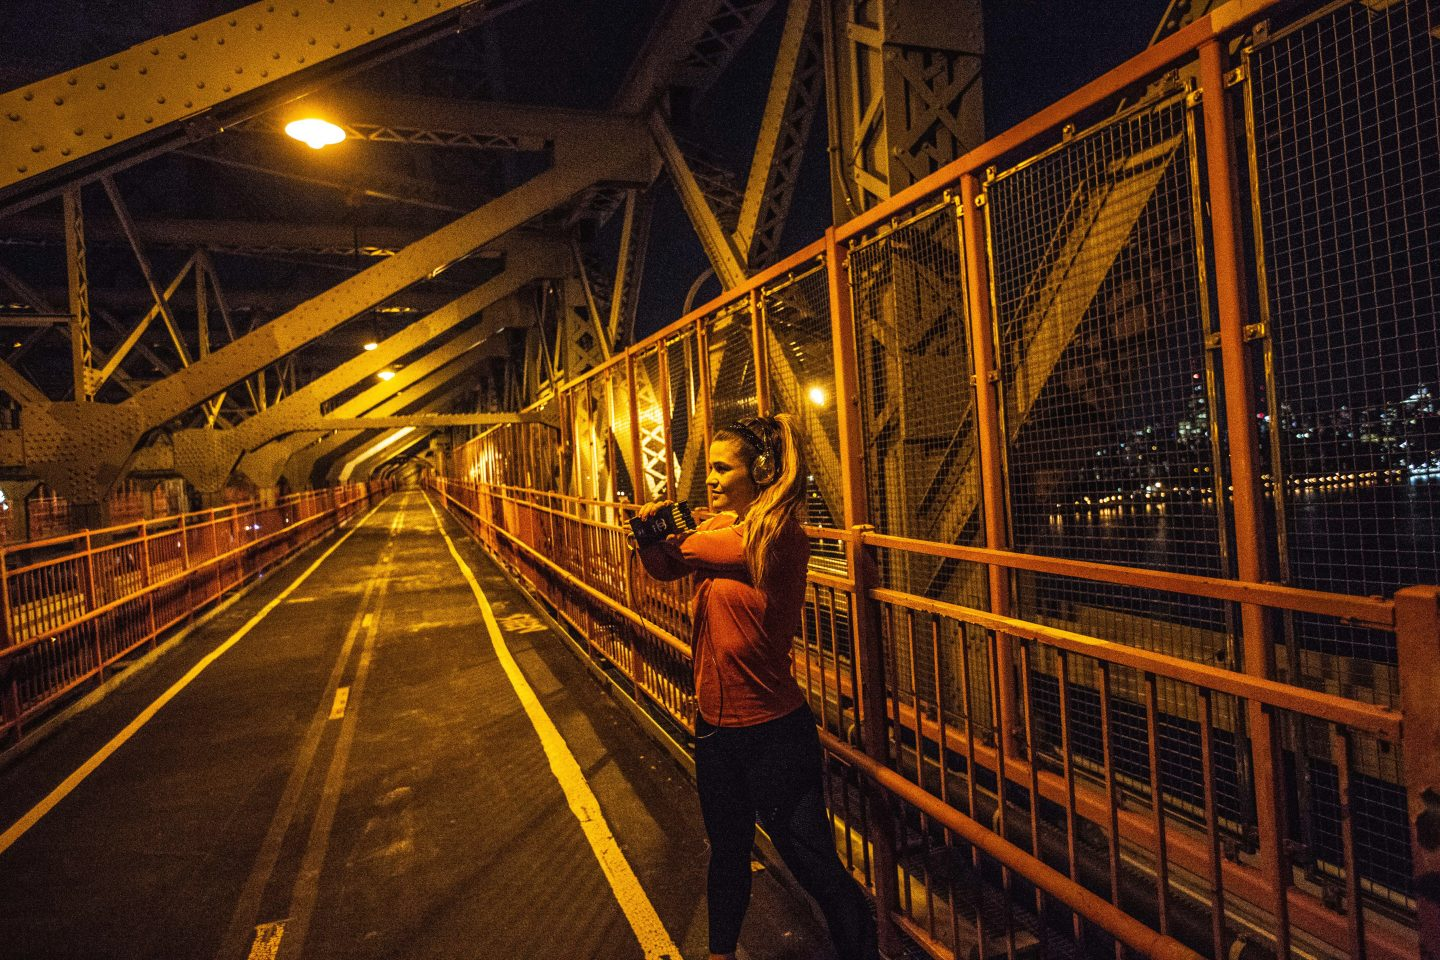 Woman stretching her muscles after a run at night on Brooklyn Bridge in New York, city run, sport, workout, after work exercise, inspiration, Brooklyn Bridge, New York, adidas, GamePlan A